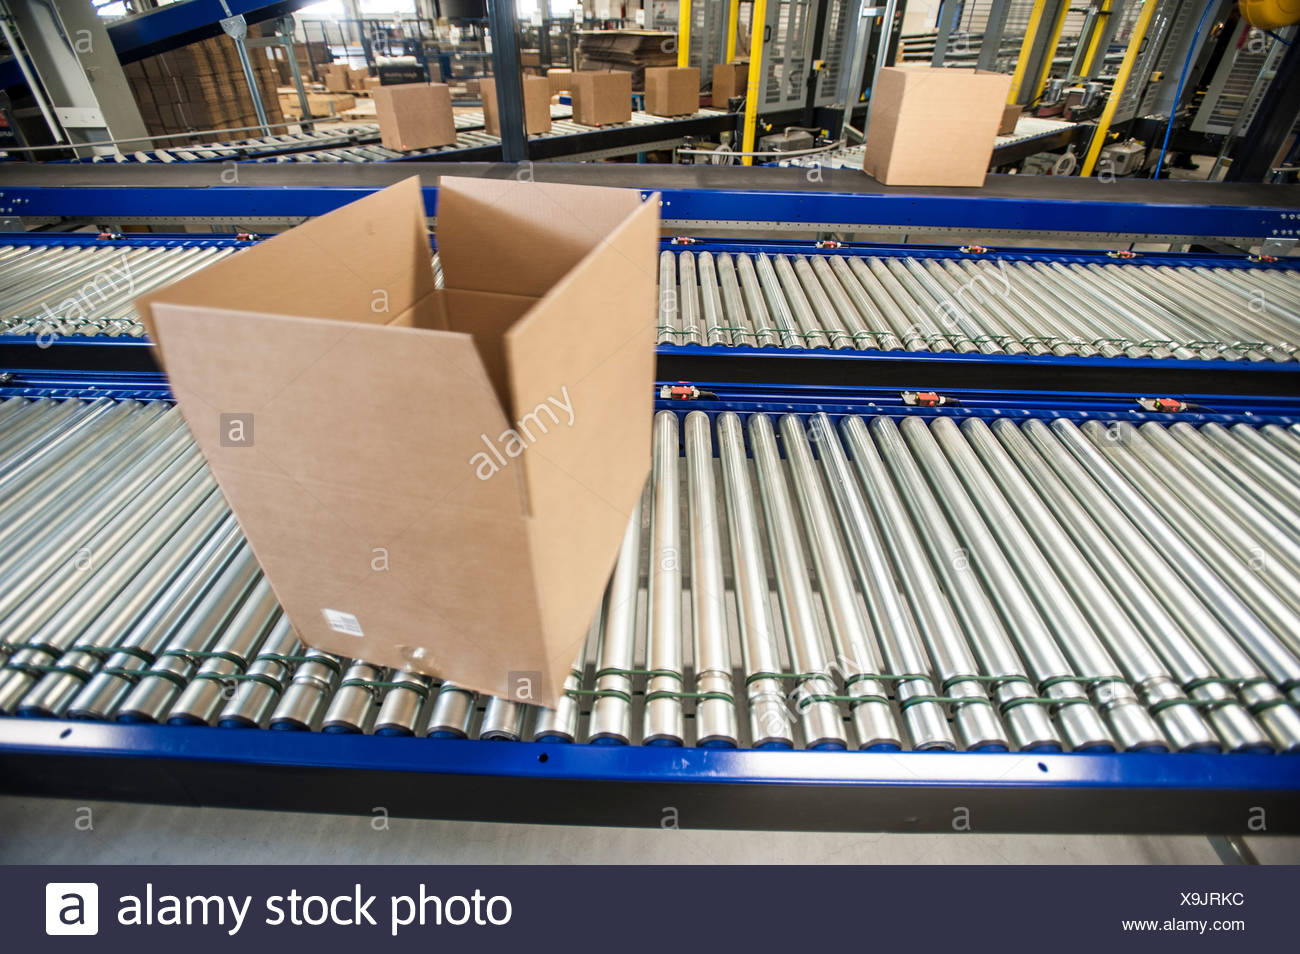 Empty box on moving conveyor belt - Stock Image